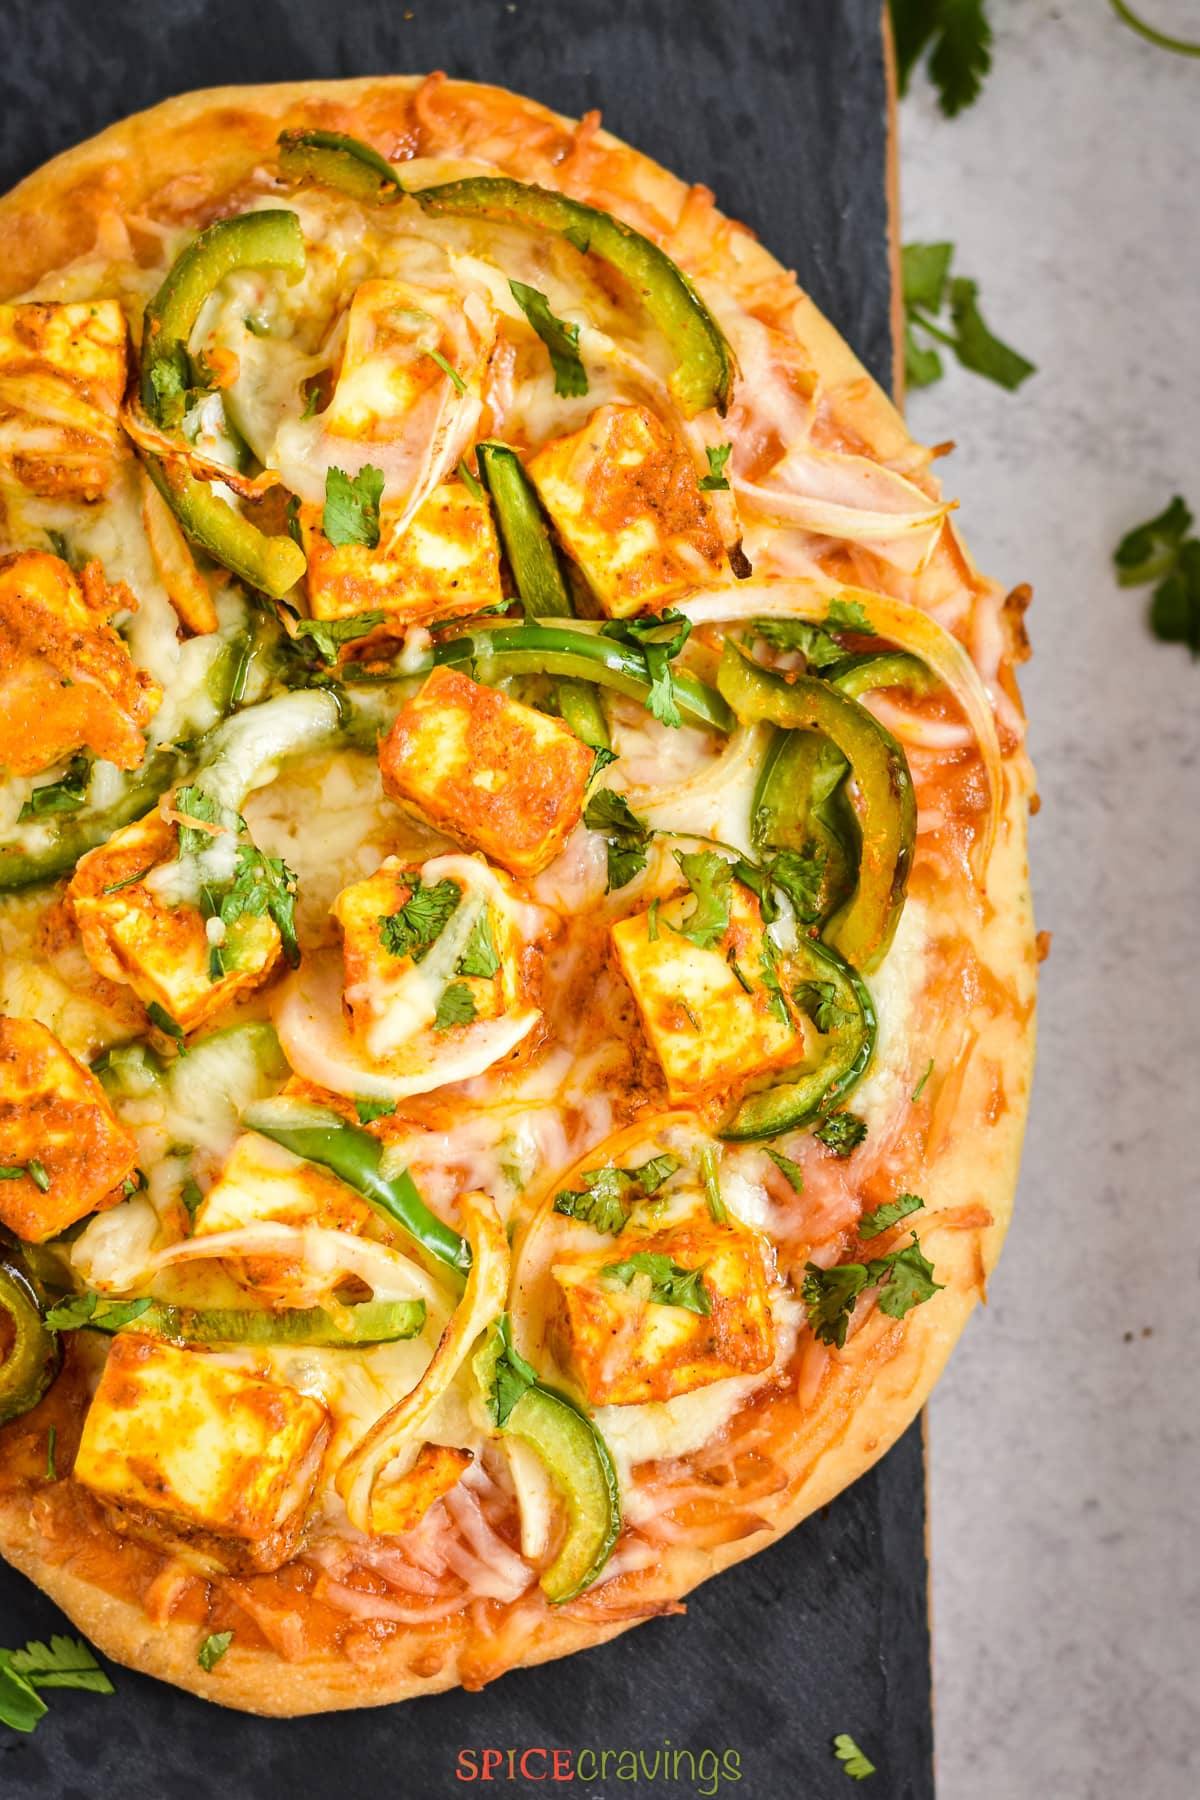 slices of indian flatbread pizza with marinated paneer cheese and veggies on black board